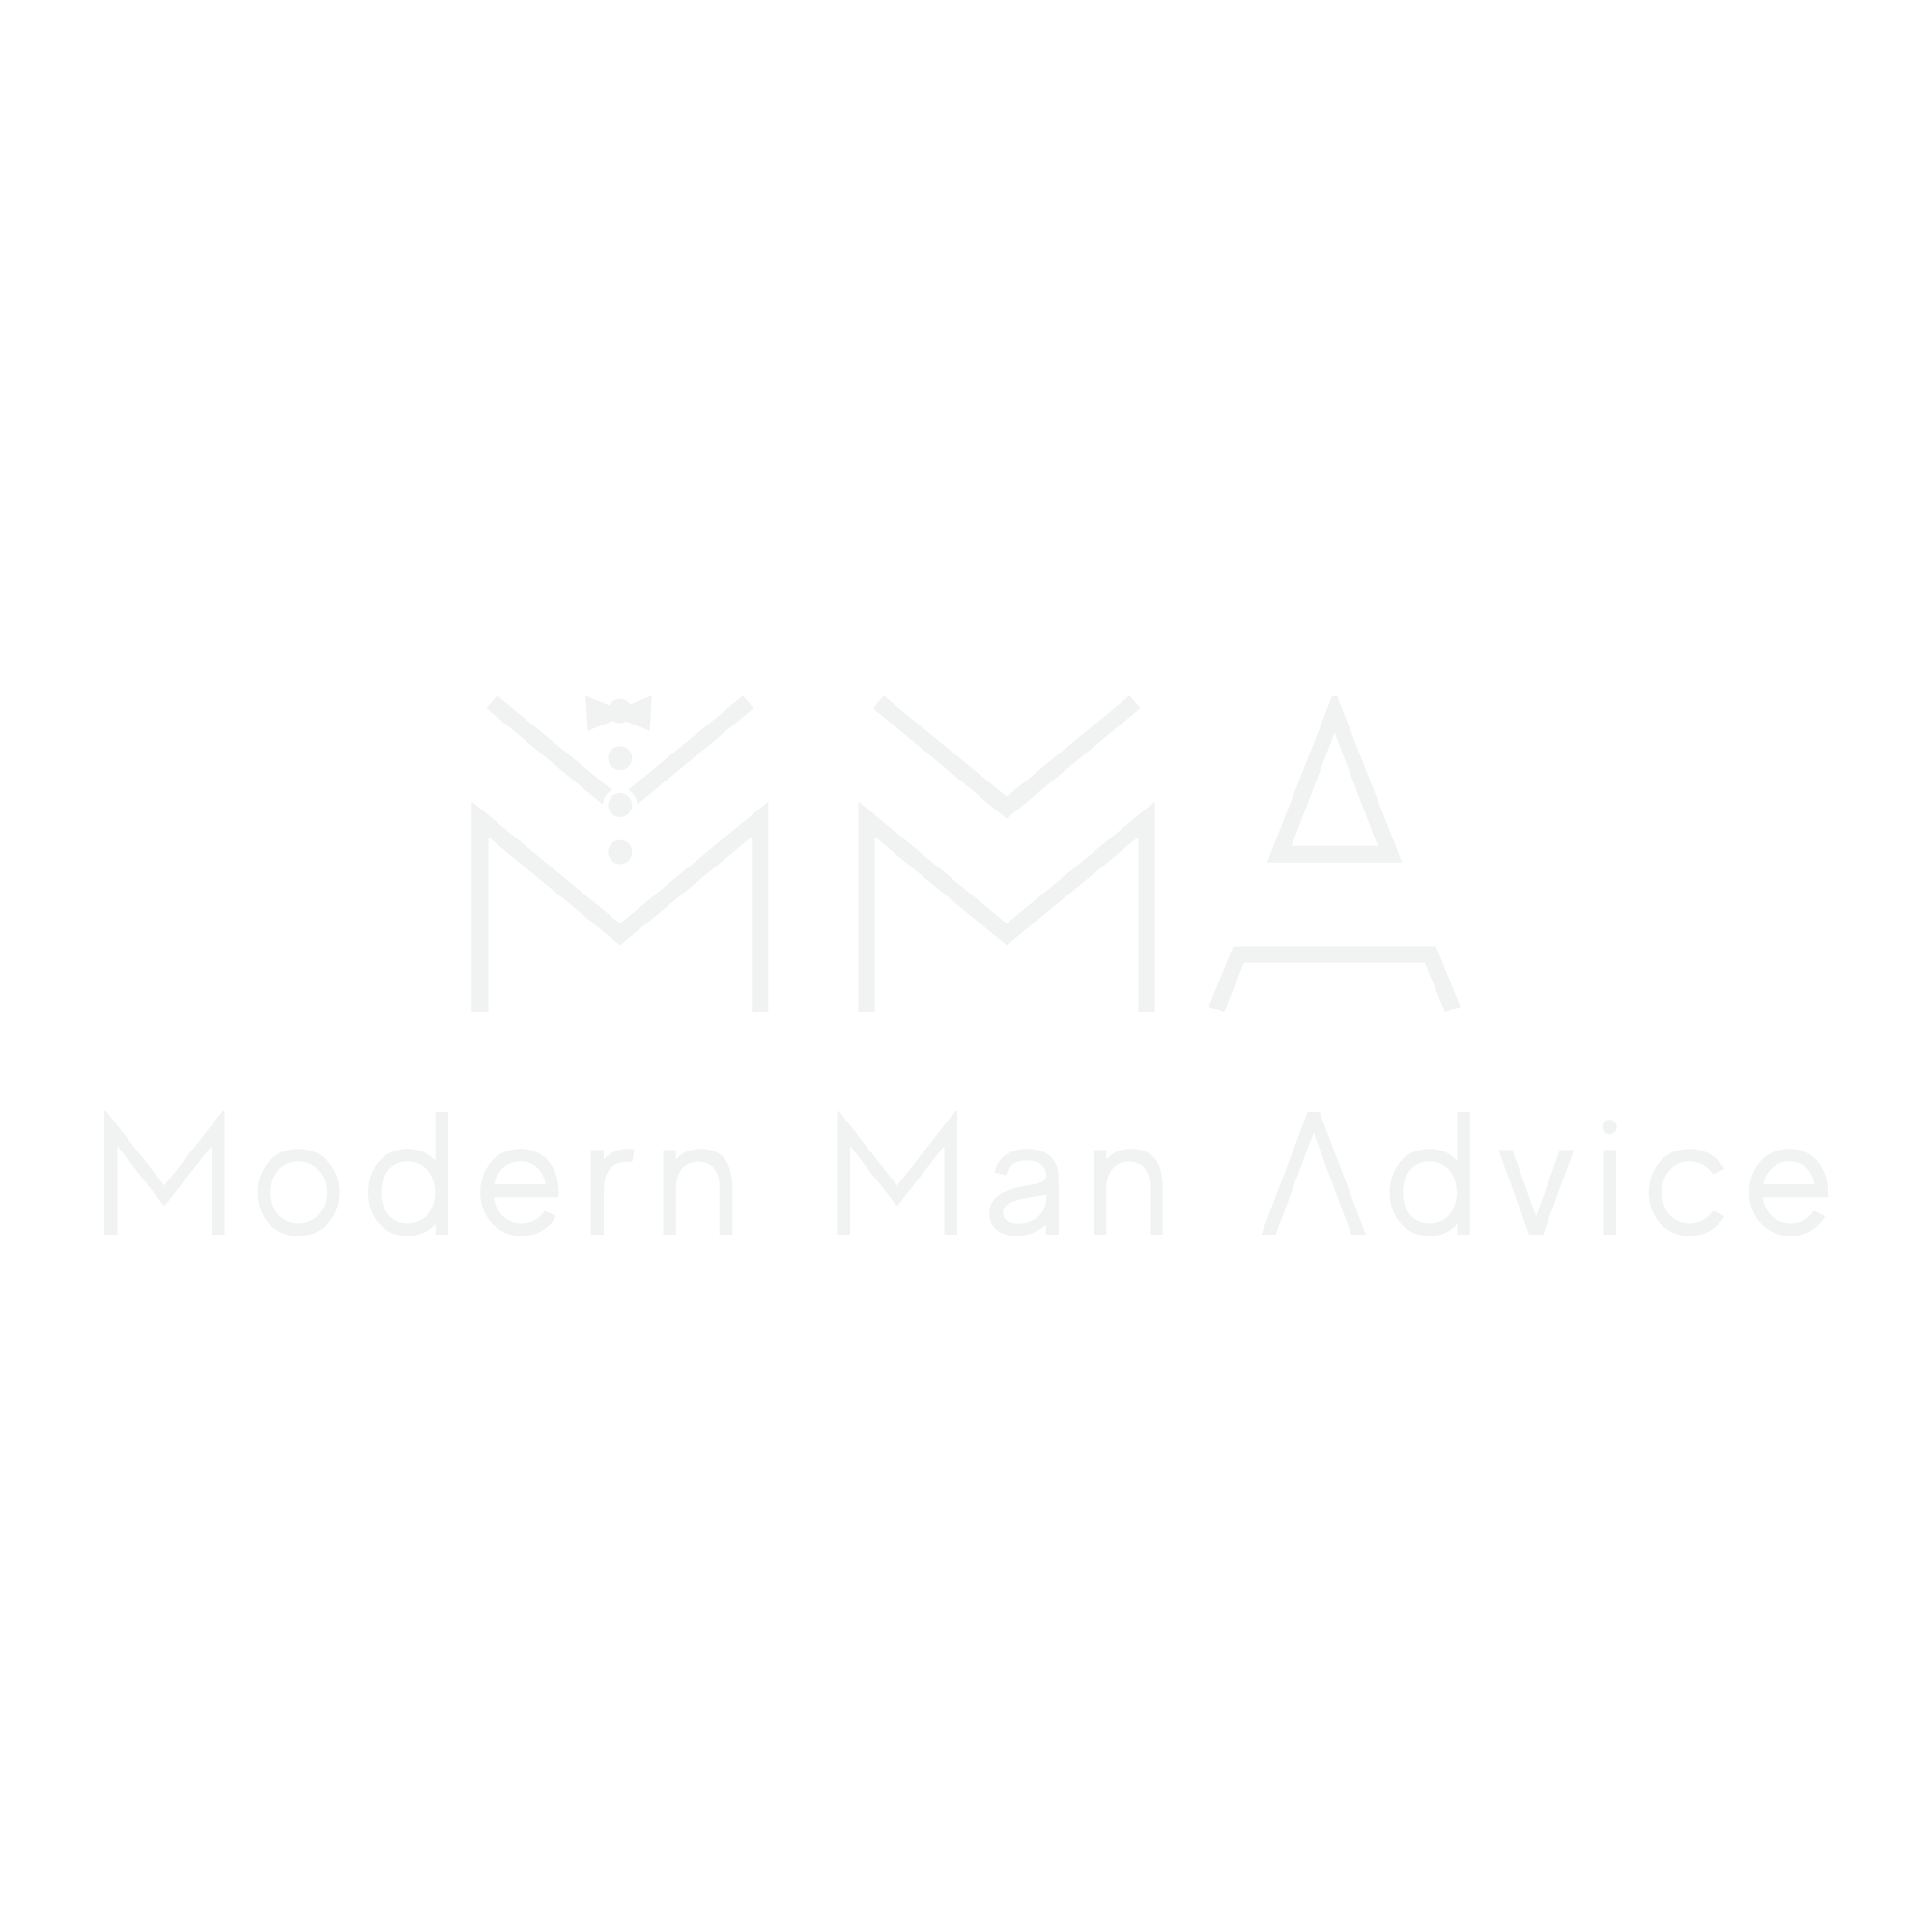 Modern Man Advice